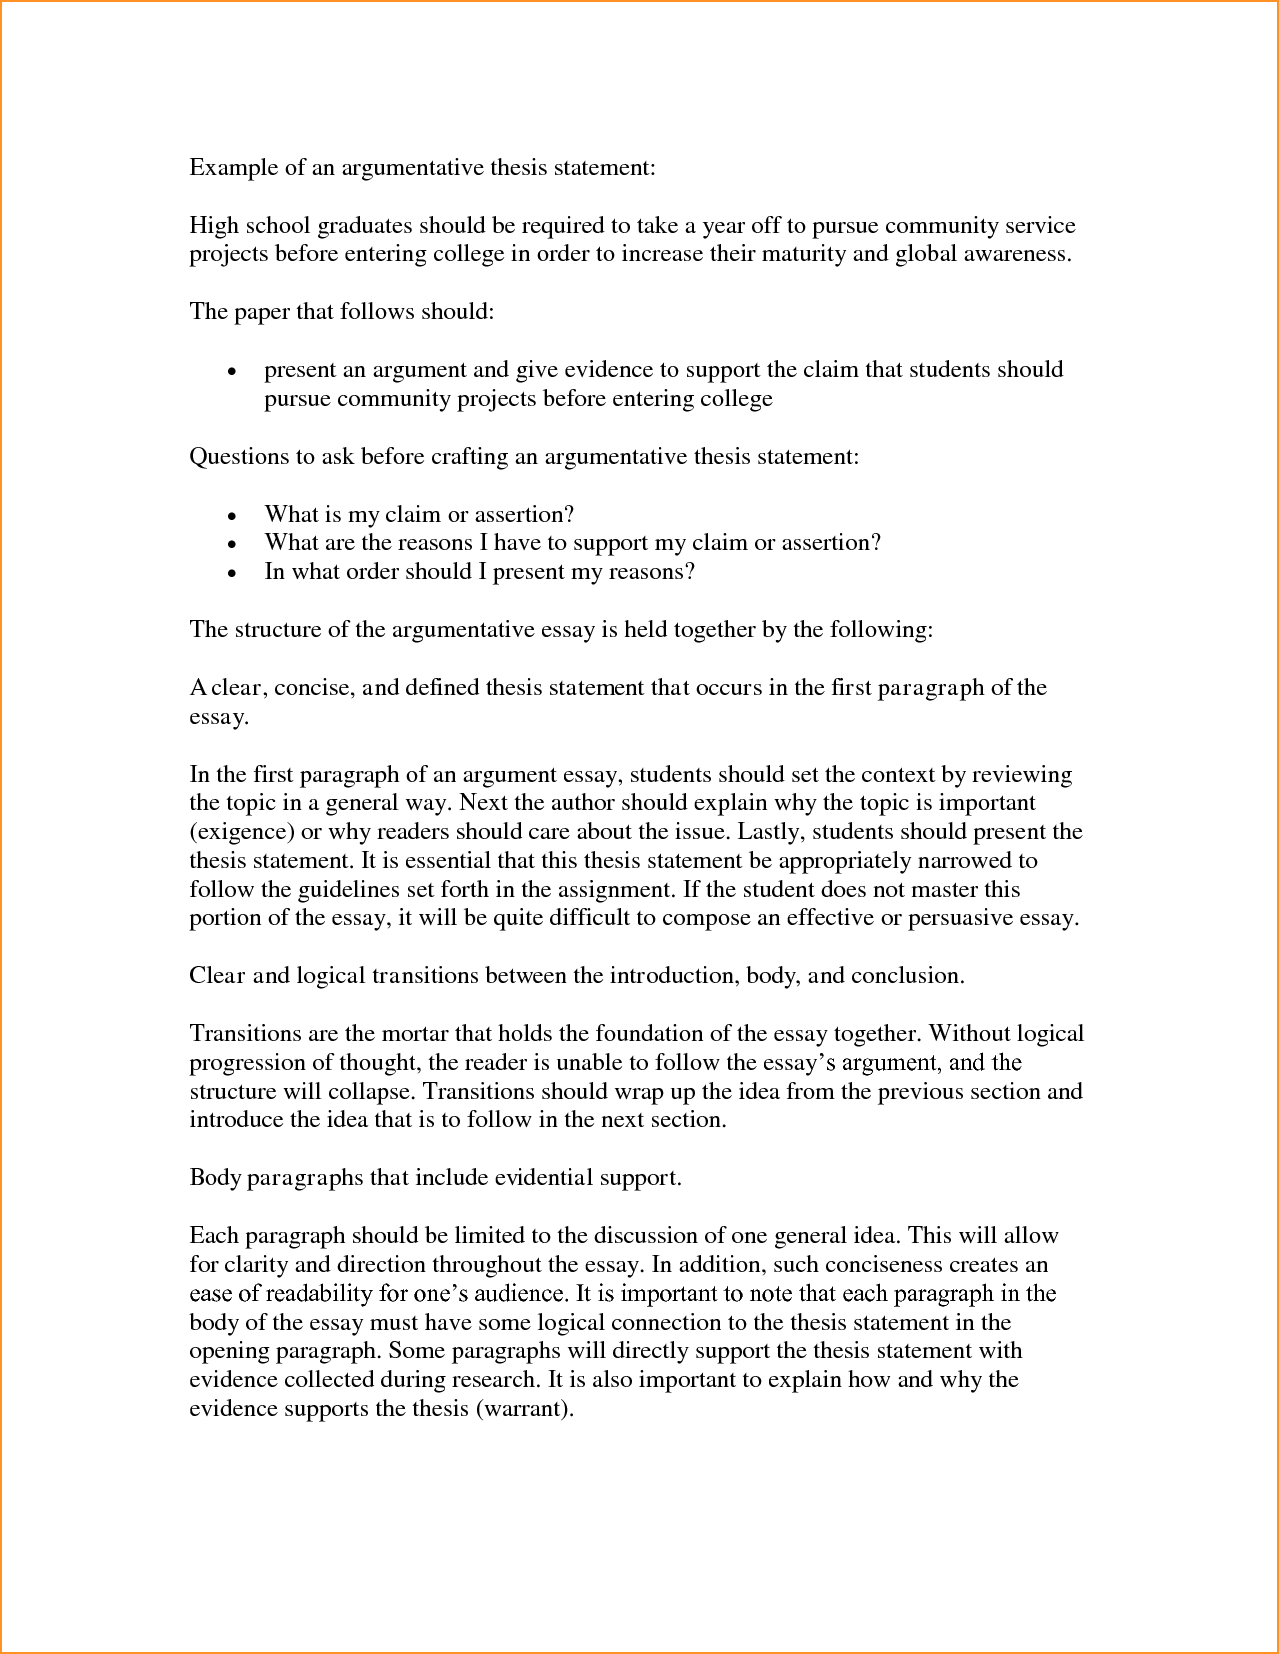 uw essay prompt essay example application statements uw help chasing on ra application essay, stanford application essay, osu application essay, ut application essay, uc application essay, iu application essay, uf application essay,